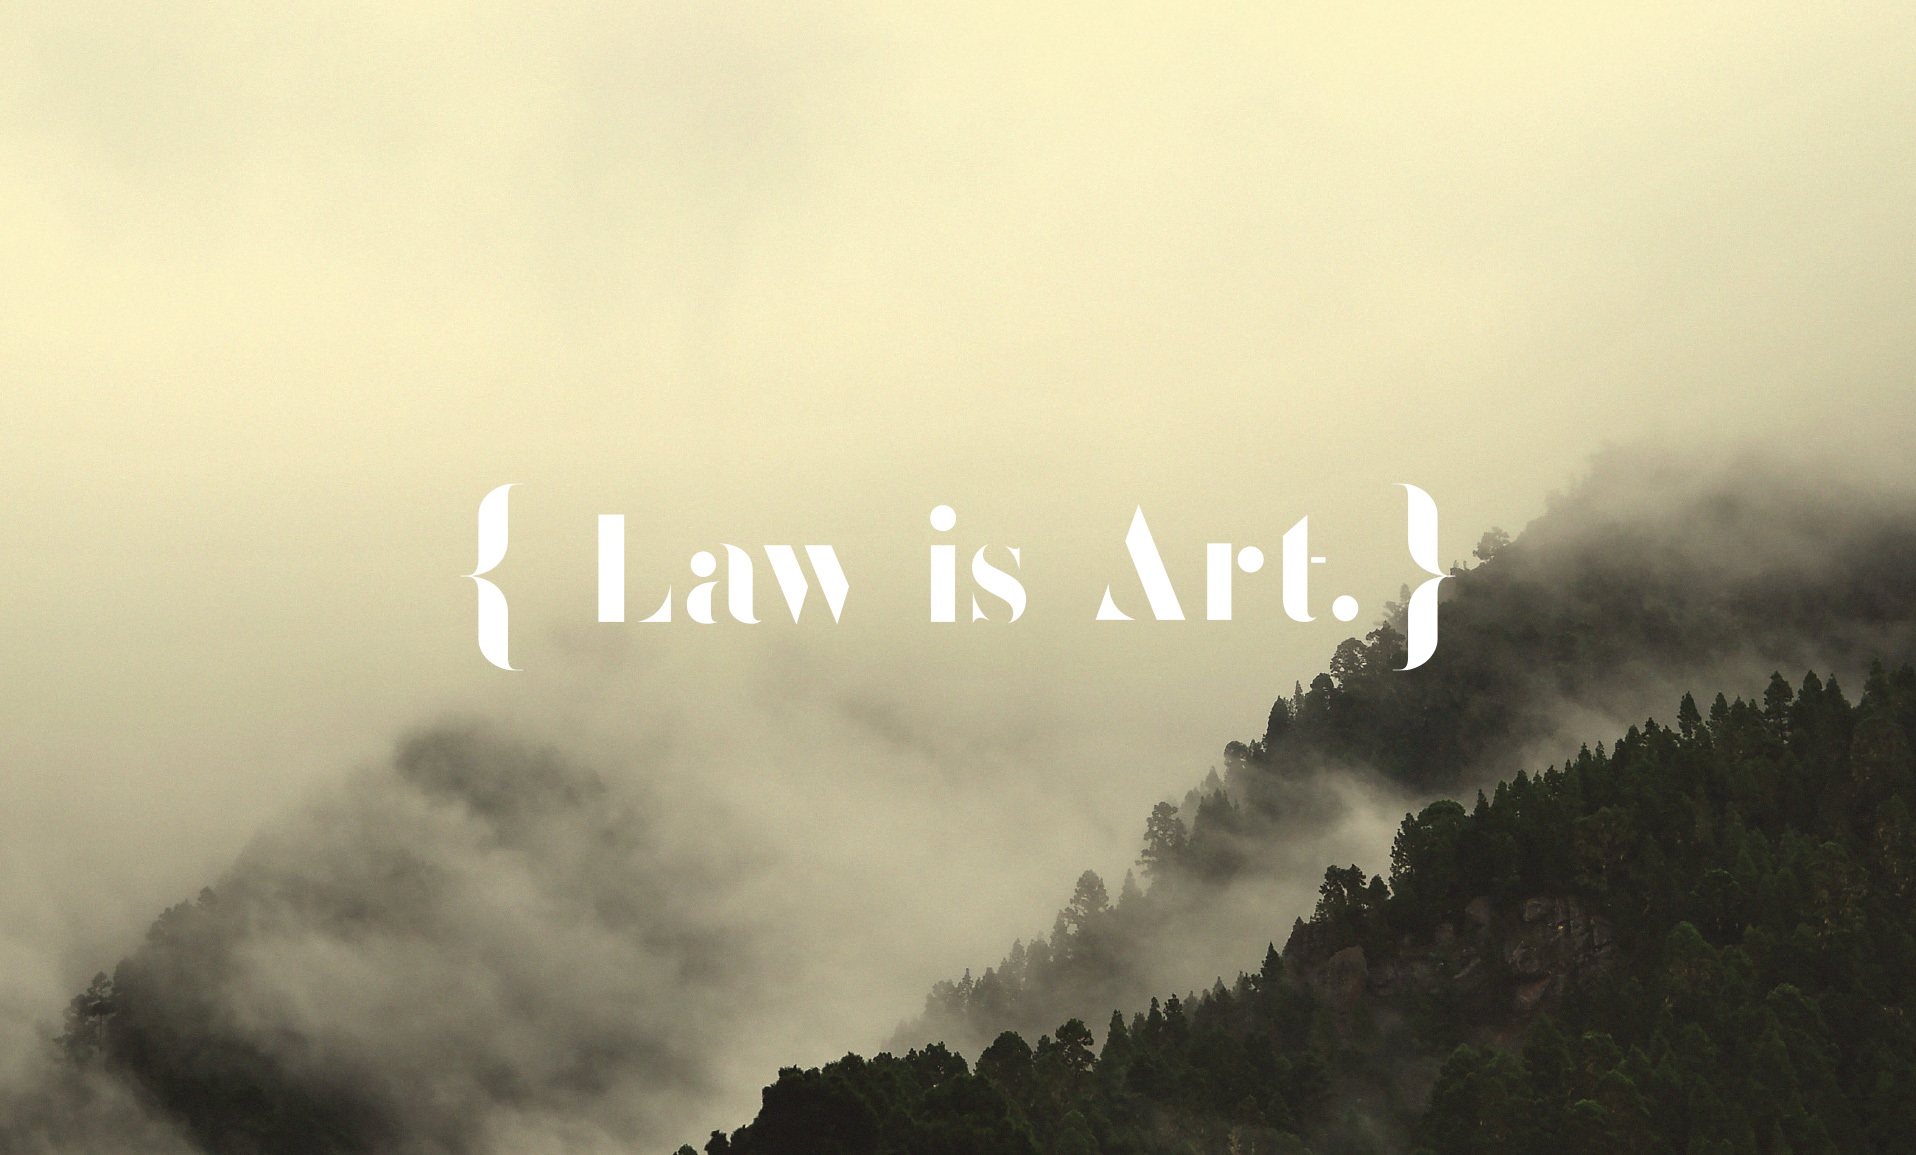 Picart Law - types top - claim law is art